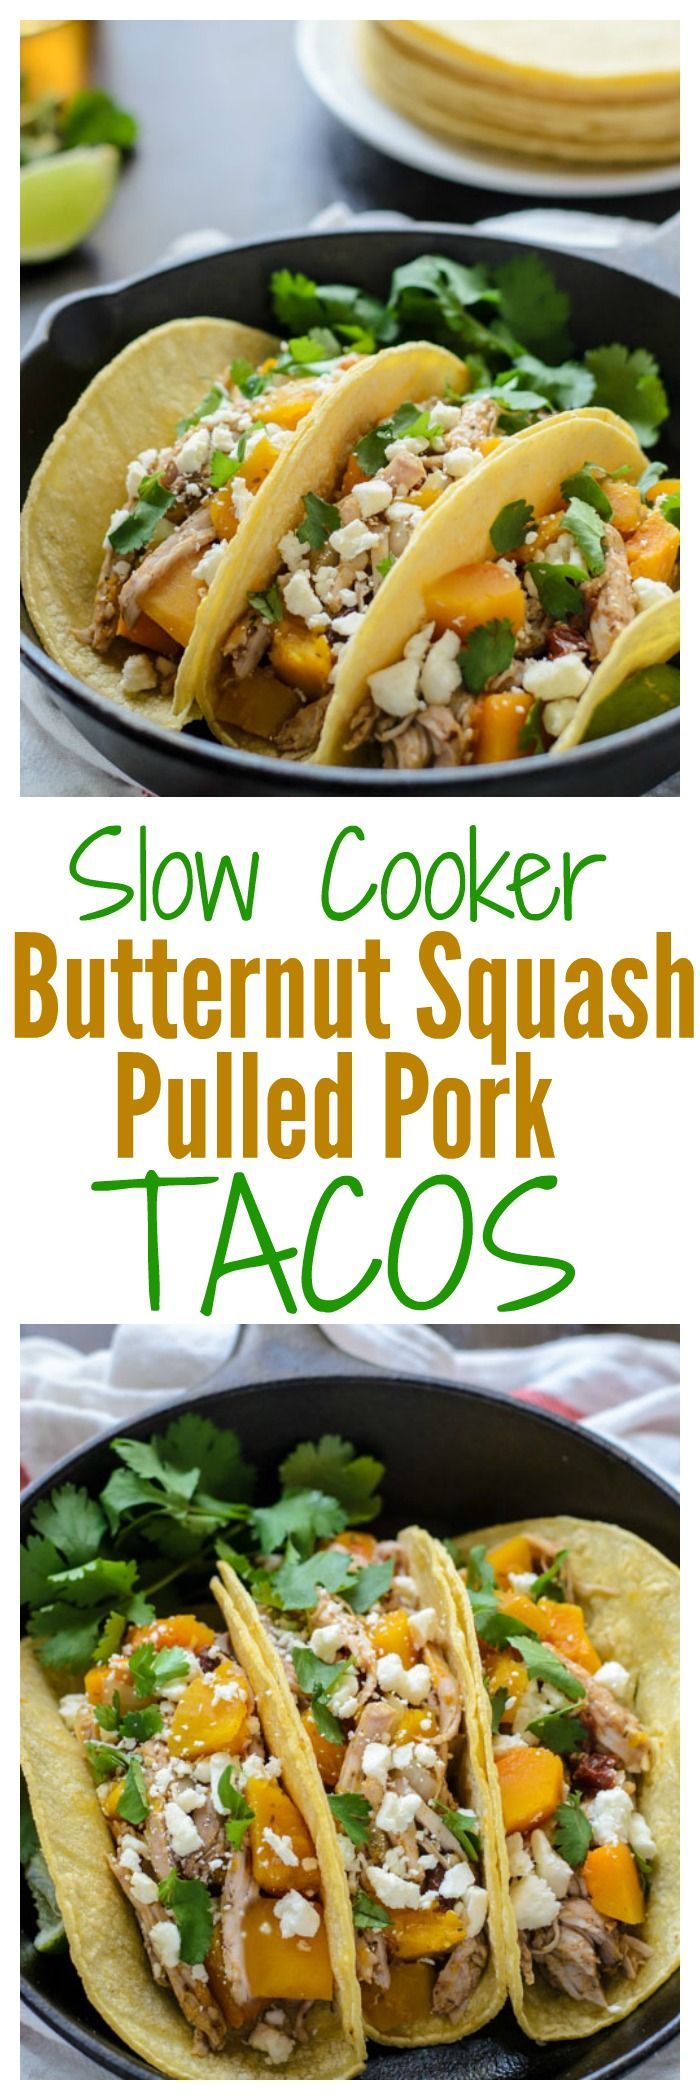 butternut squash pulled pork tacos recipe for tacos pulled pork tacos ...